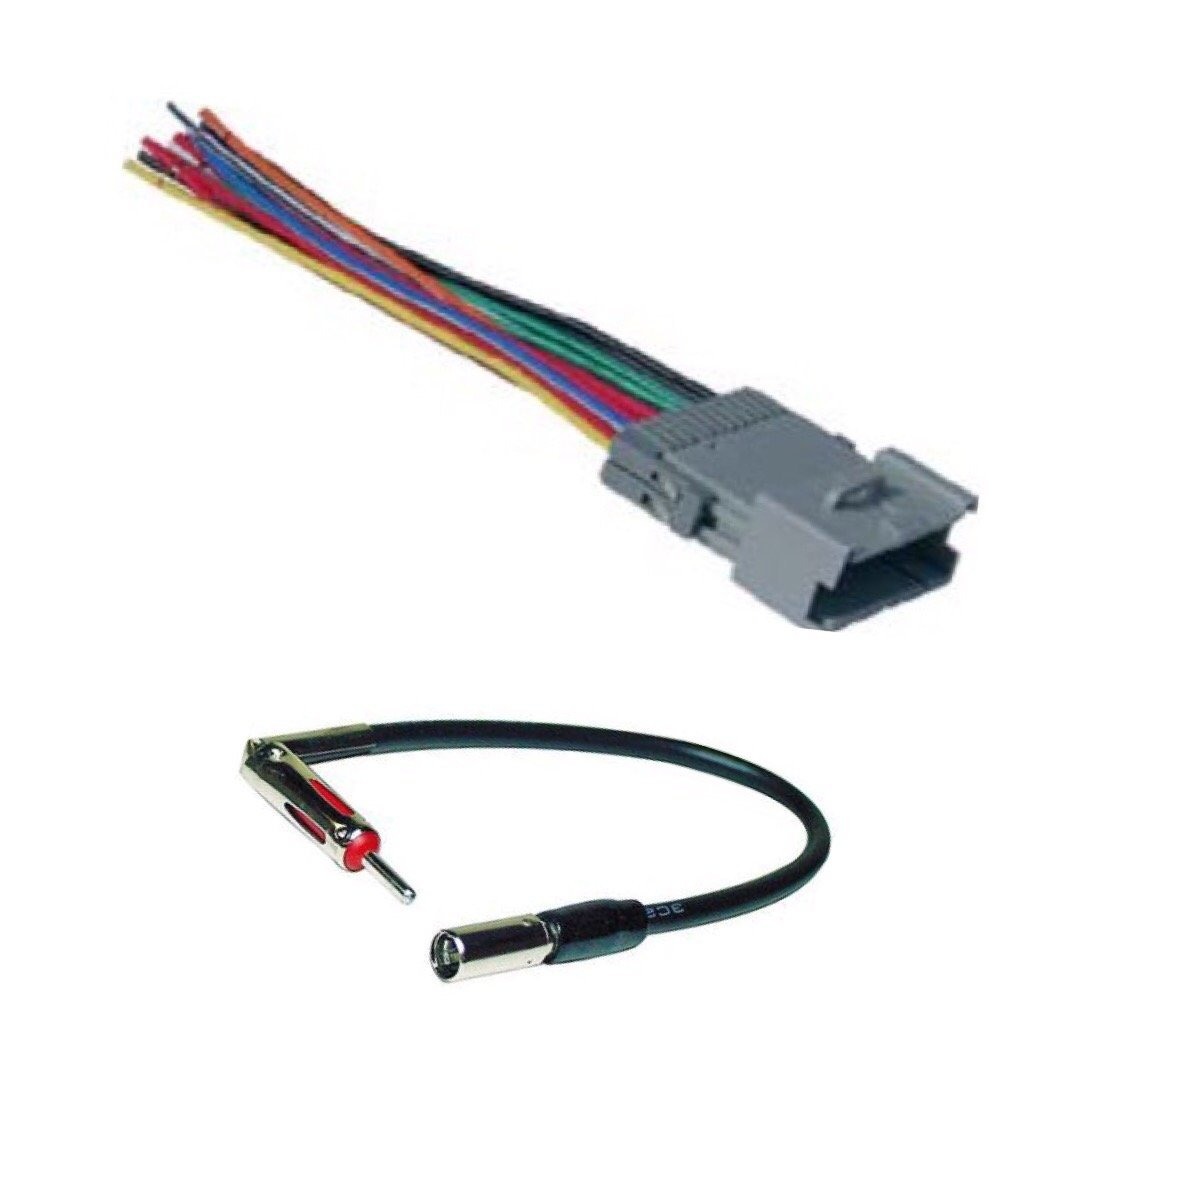 Car Stereo Radio Wire Harness and Antenna Adapter to Install an Aftermarket Radio for select GM Chevrolet GMC Hyundai Vehicles - No Premium Amp - See Compatible Vehicles and Restrictions Below